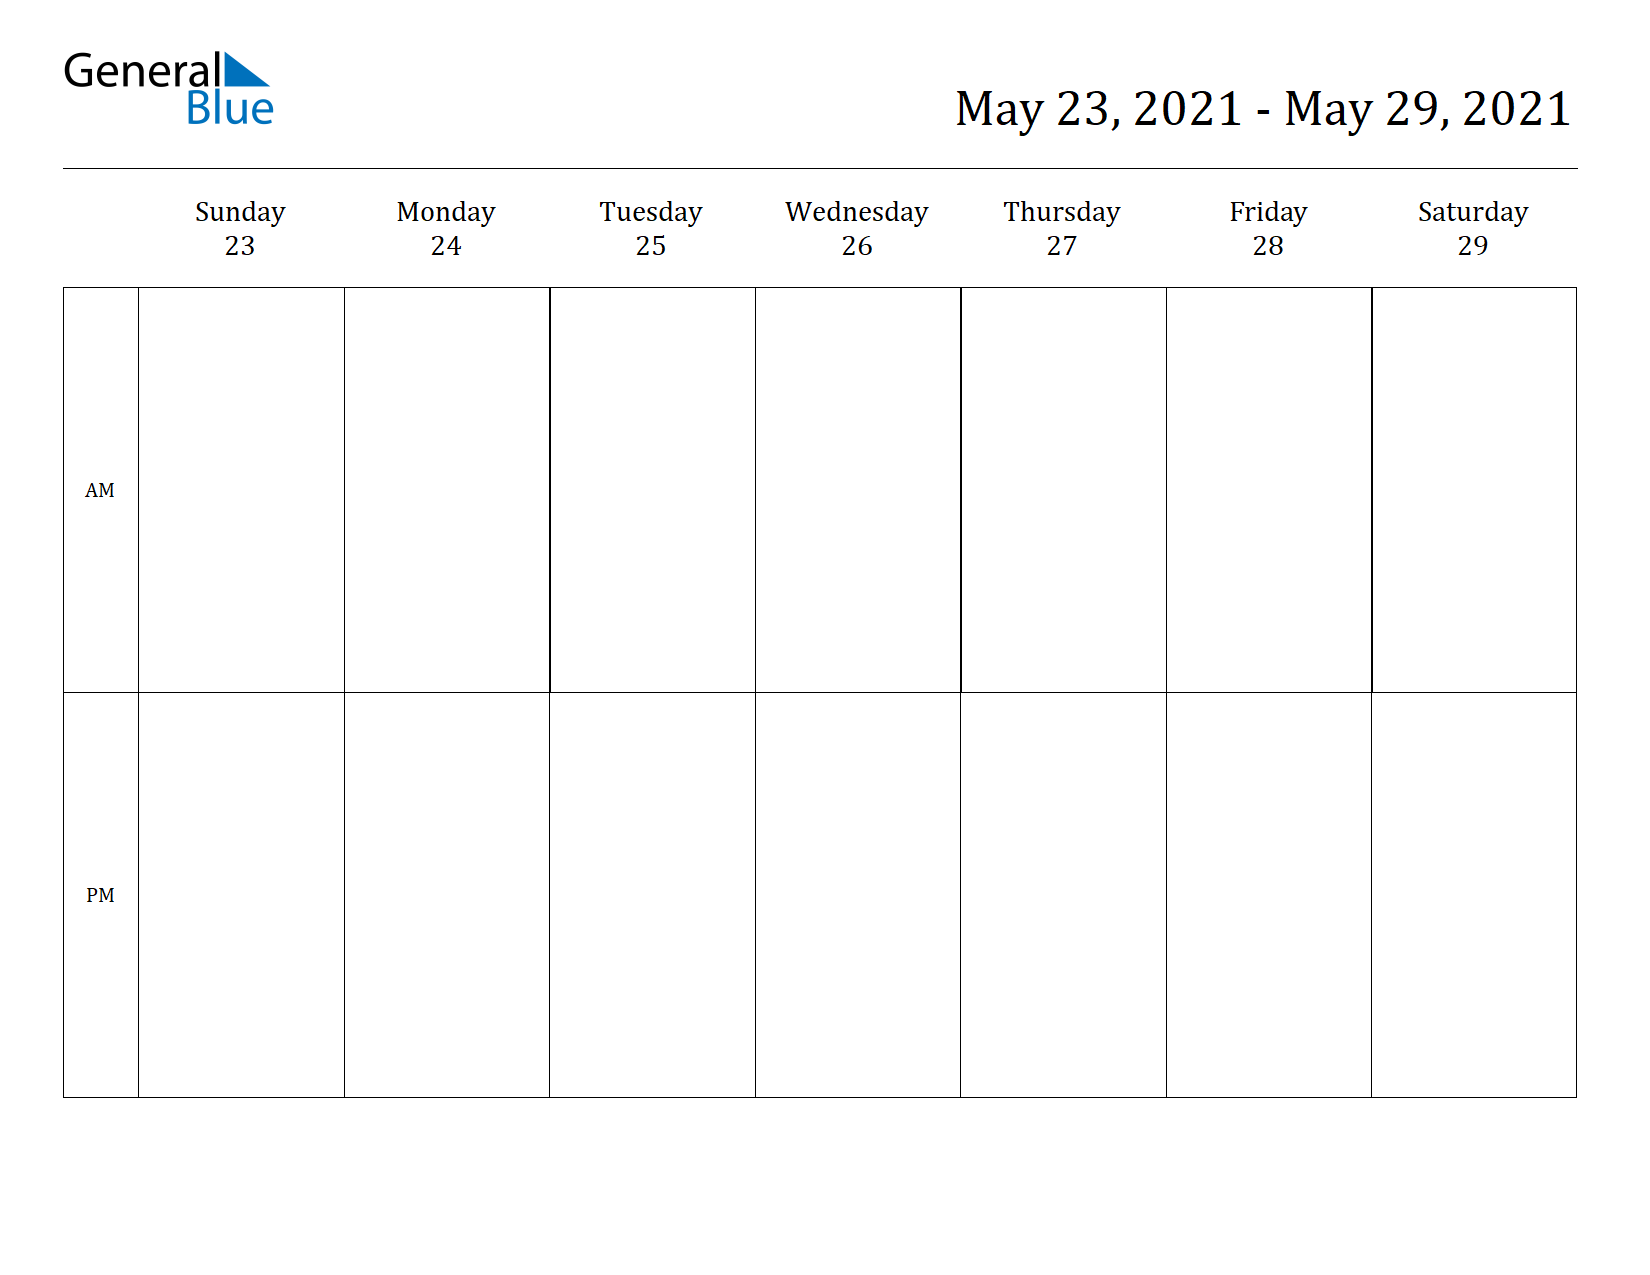 Weekly Calendar for May 23, 2021 to May 29, 2021